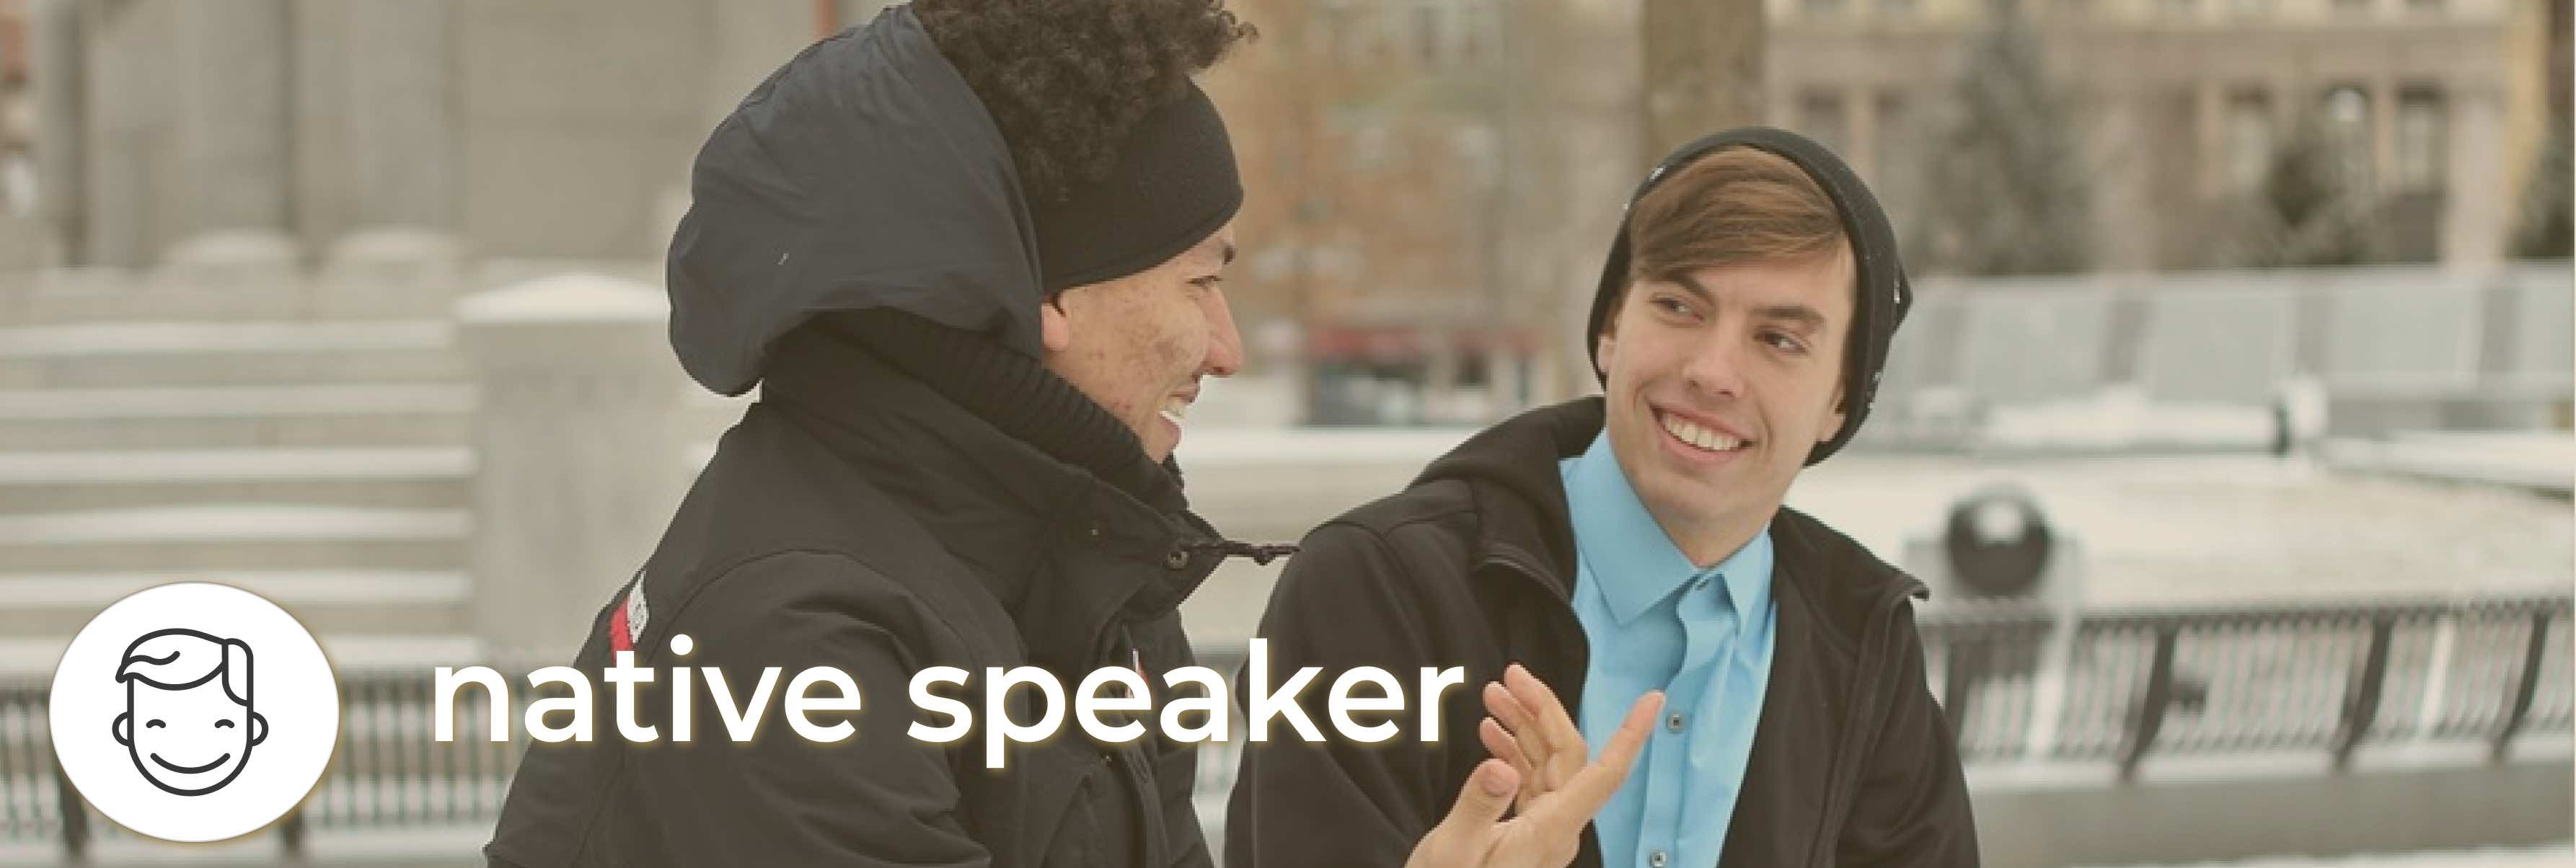 NativeSpeaker.com.pl students talking